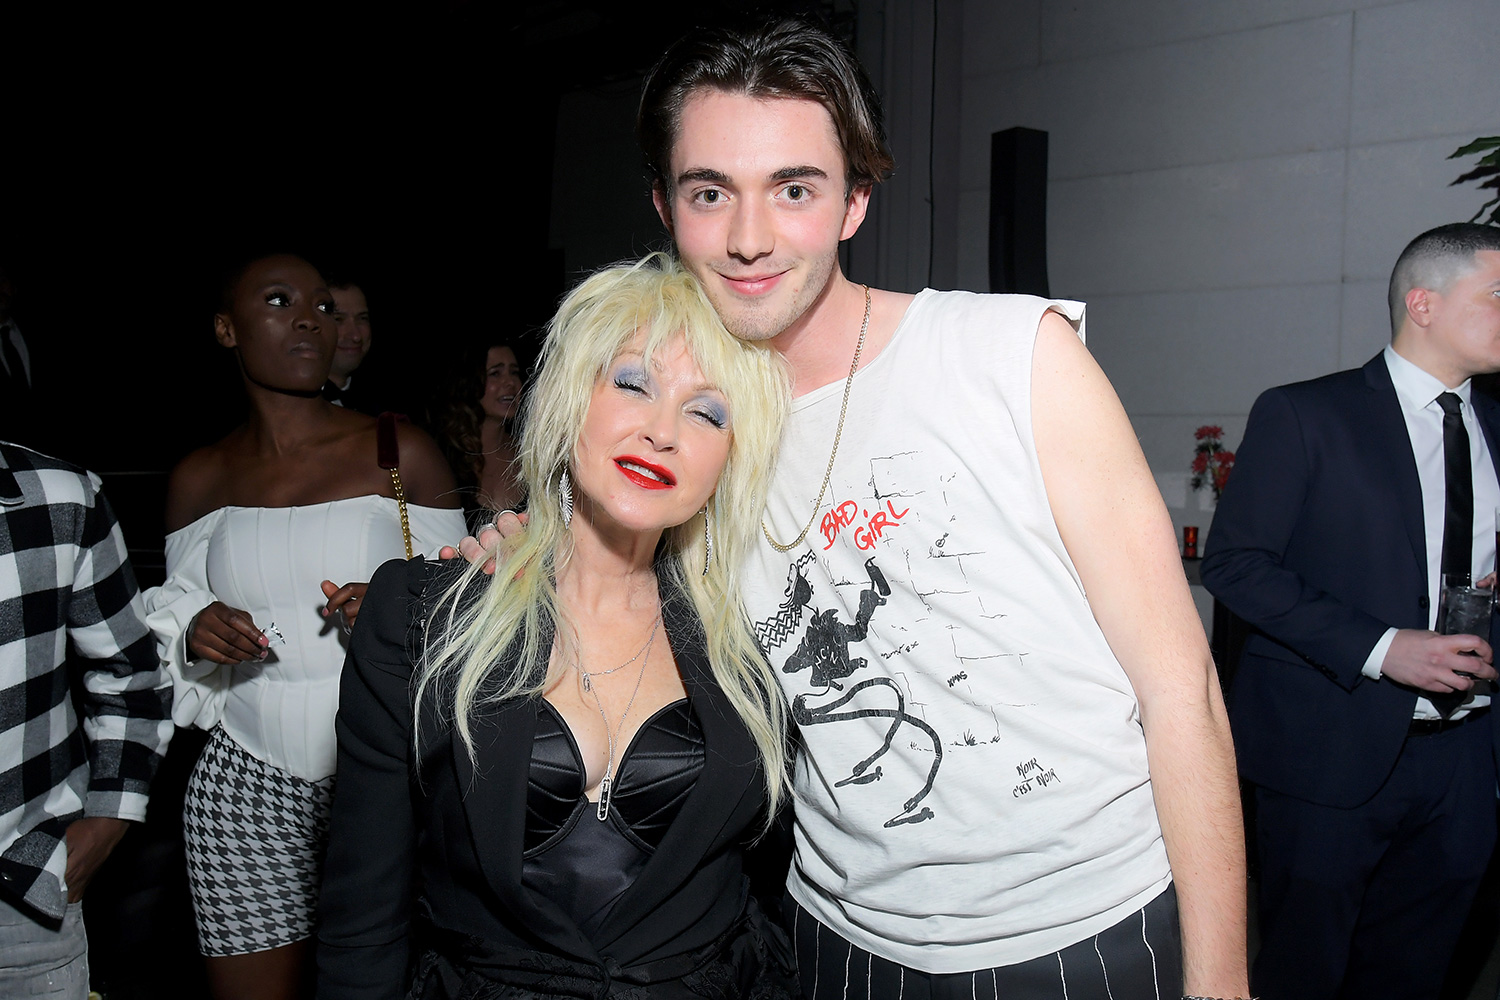 Cyndi Lauper and Greyson Chance